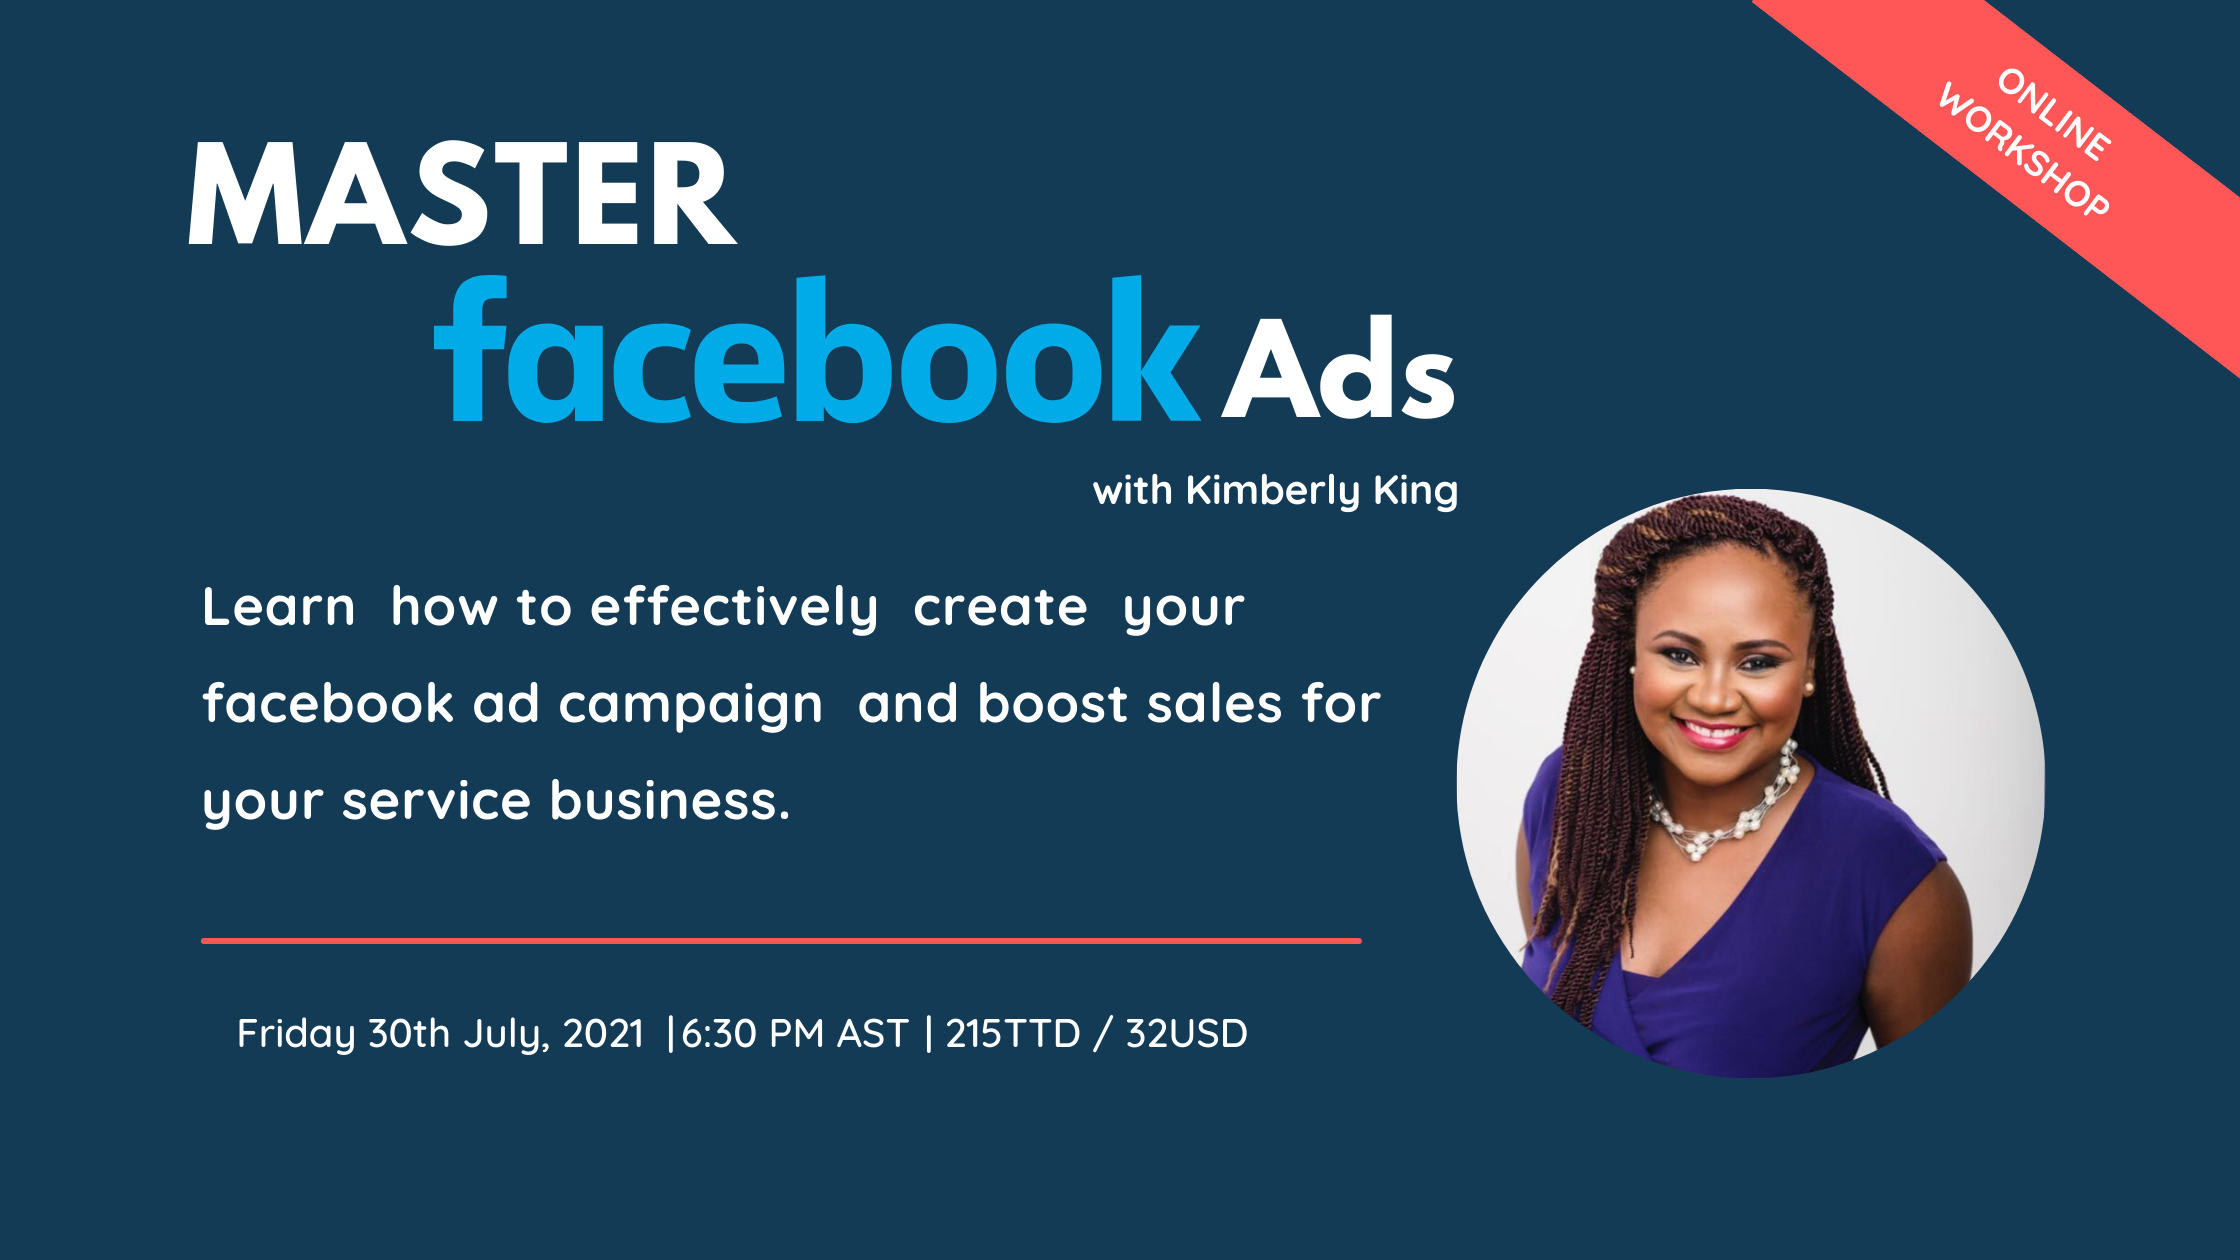 Master Facebook Ads with Kimberly King